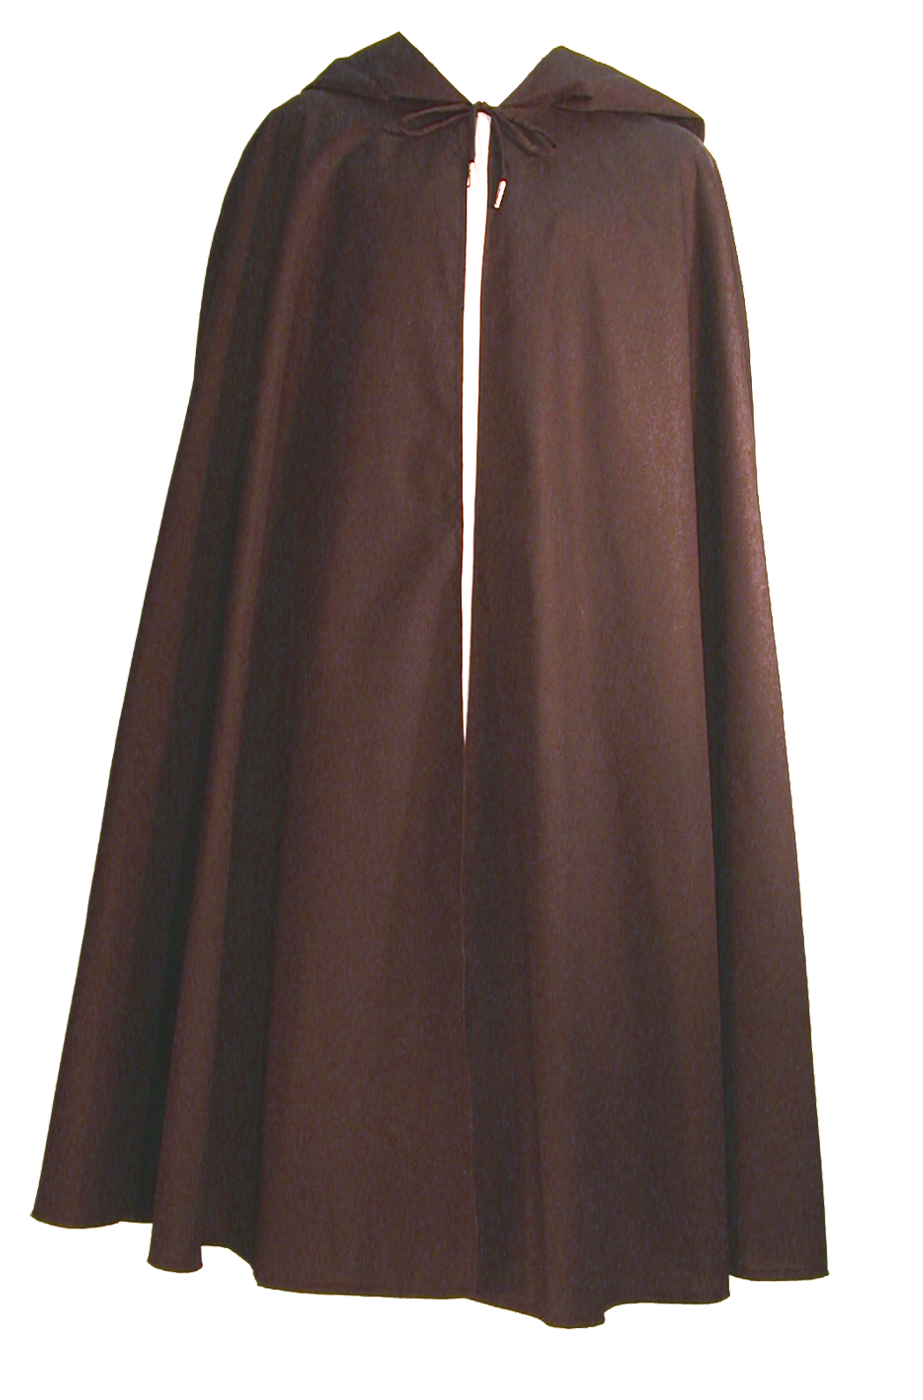 Wanderer Cape from White Pavilion Costumes, front view. Ideal for medieval costumes, renaissance costumes, fantasy costumes, fairytale costumes, pirate costumes, Robin Hood costumes, hobbit costumes and Halloween costumes.